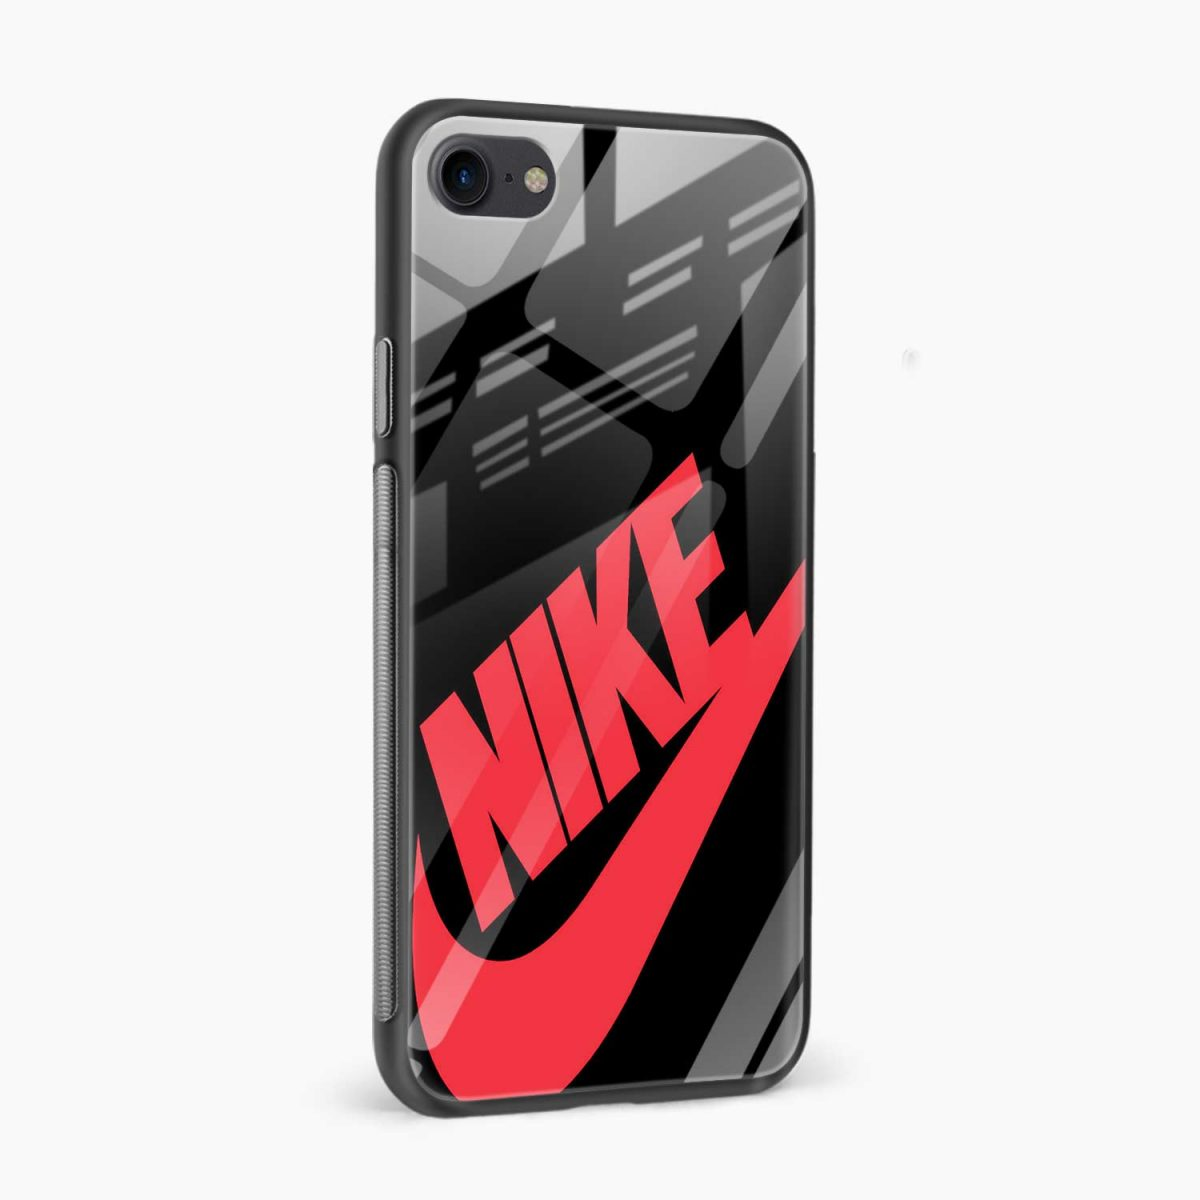 nike black red diagonal view apple iphone 6 7 8 se back cover 5